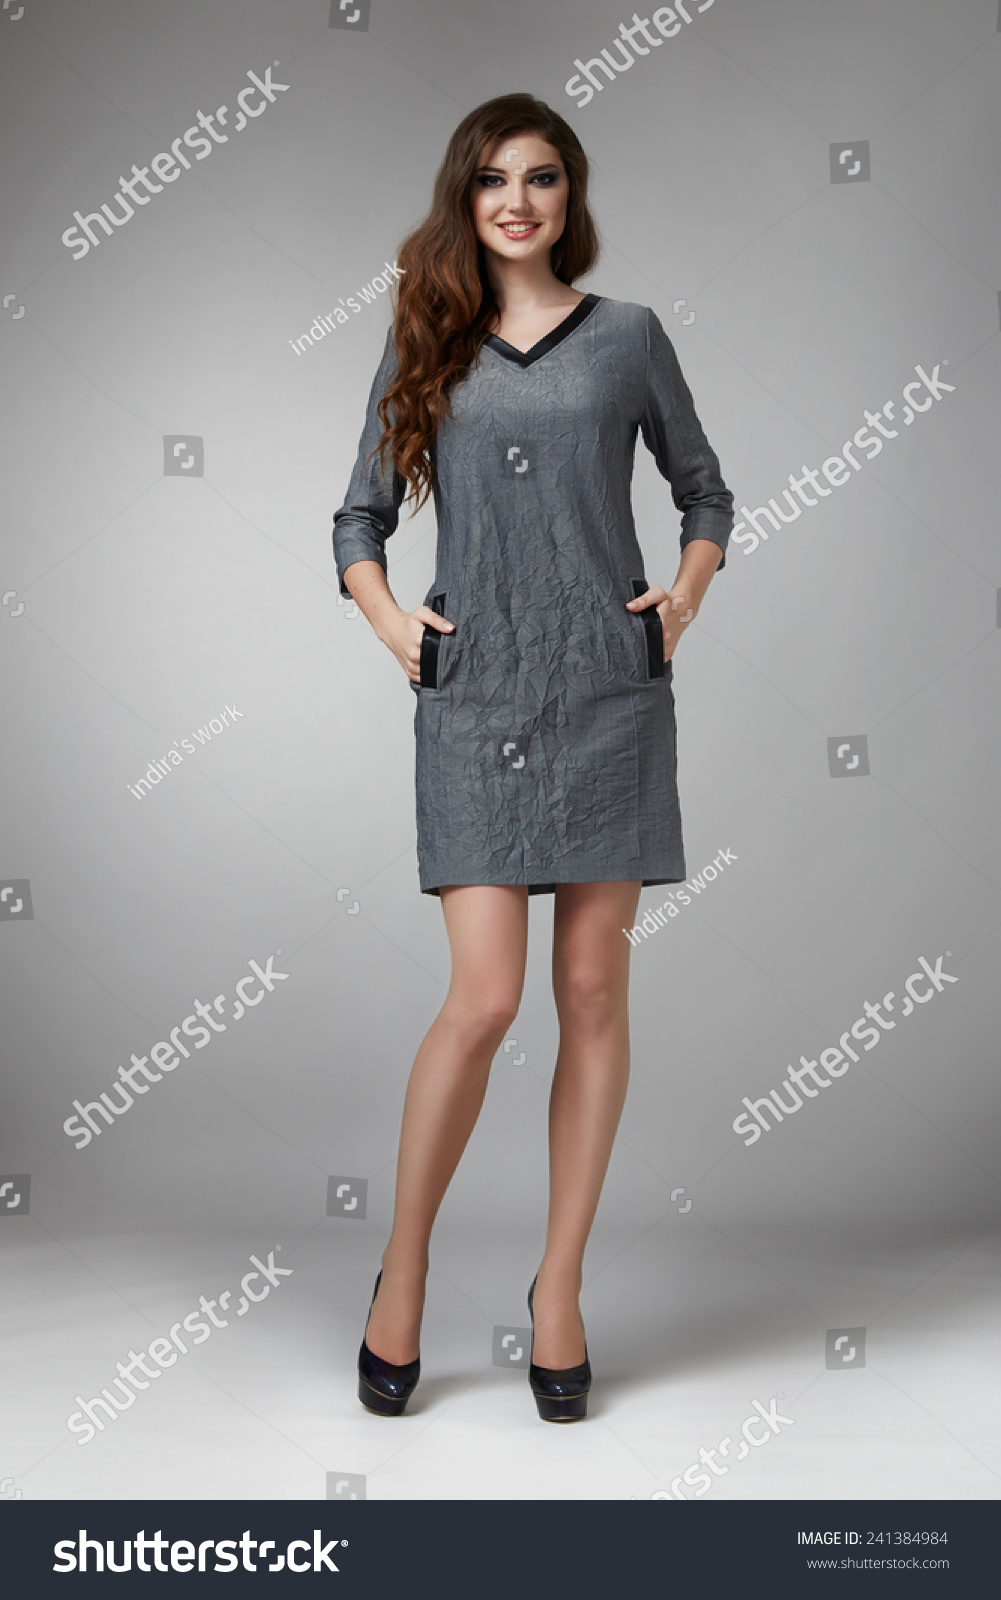 bbd172c752c Beautiful sexy young business woman with evening make-up and long brown hair  wearing a small gray dress and high-heeled black shoes